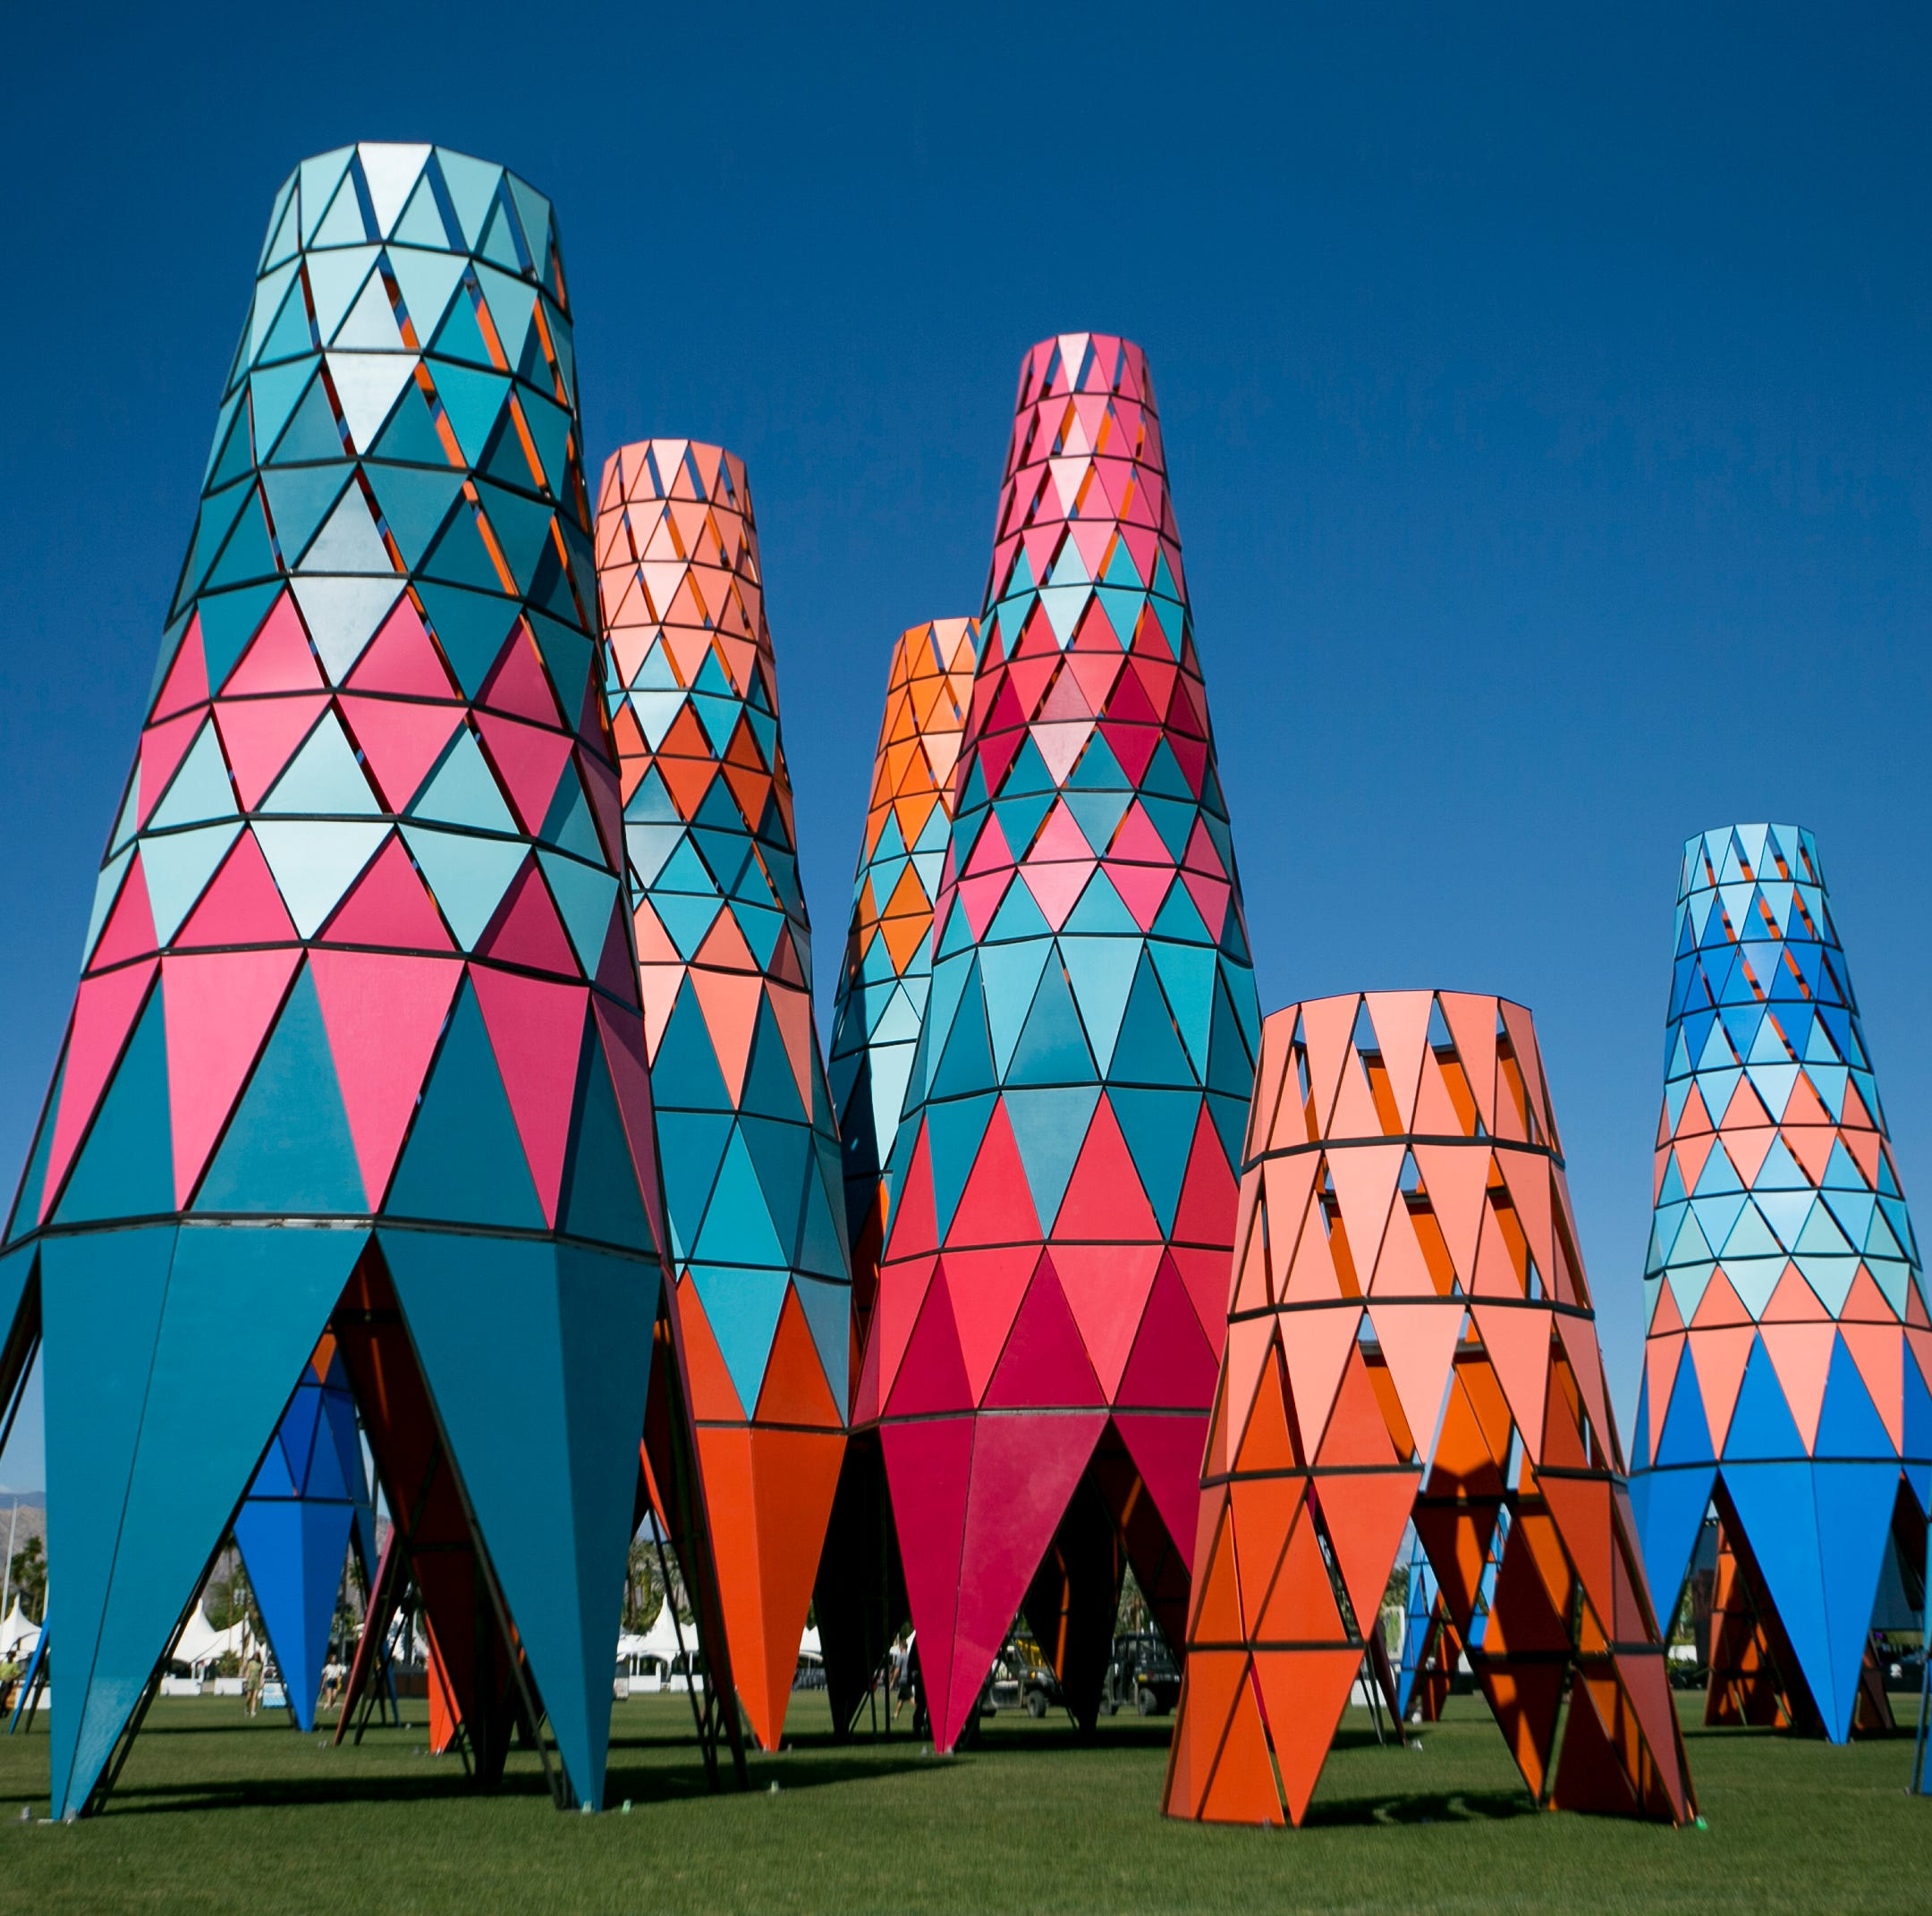 First look: Coachella 2019 festival art installations, from astronaut to cactuses